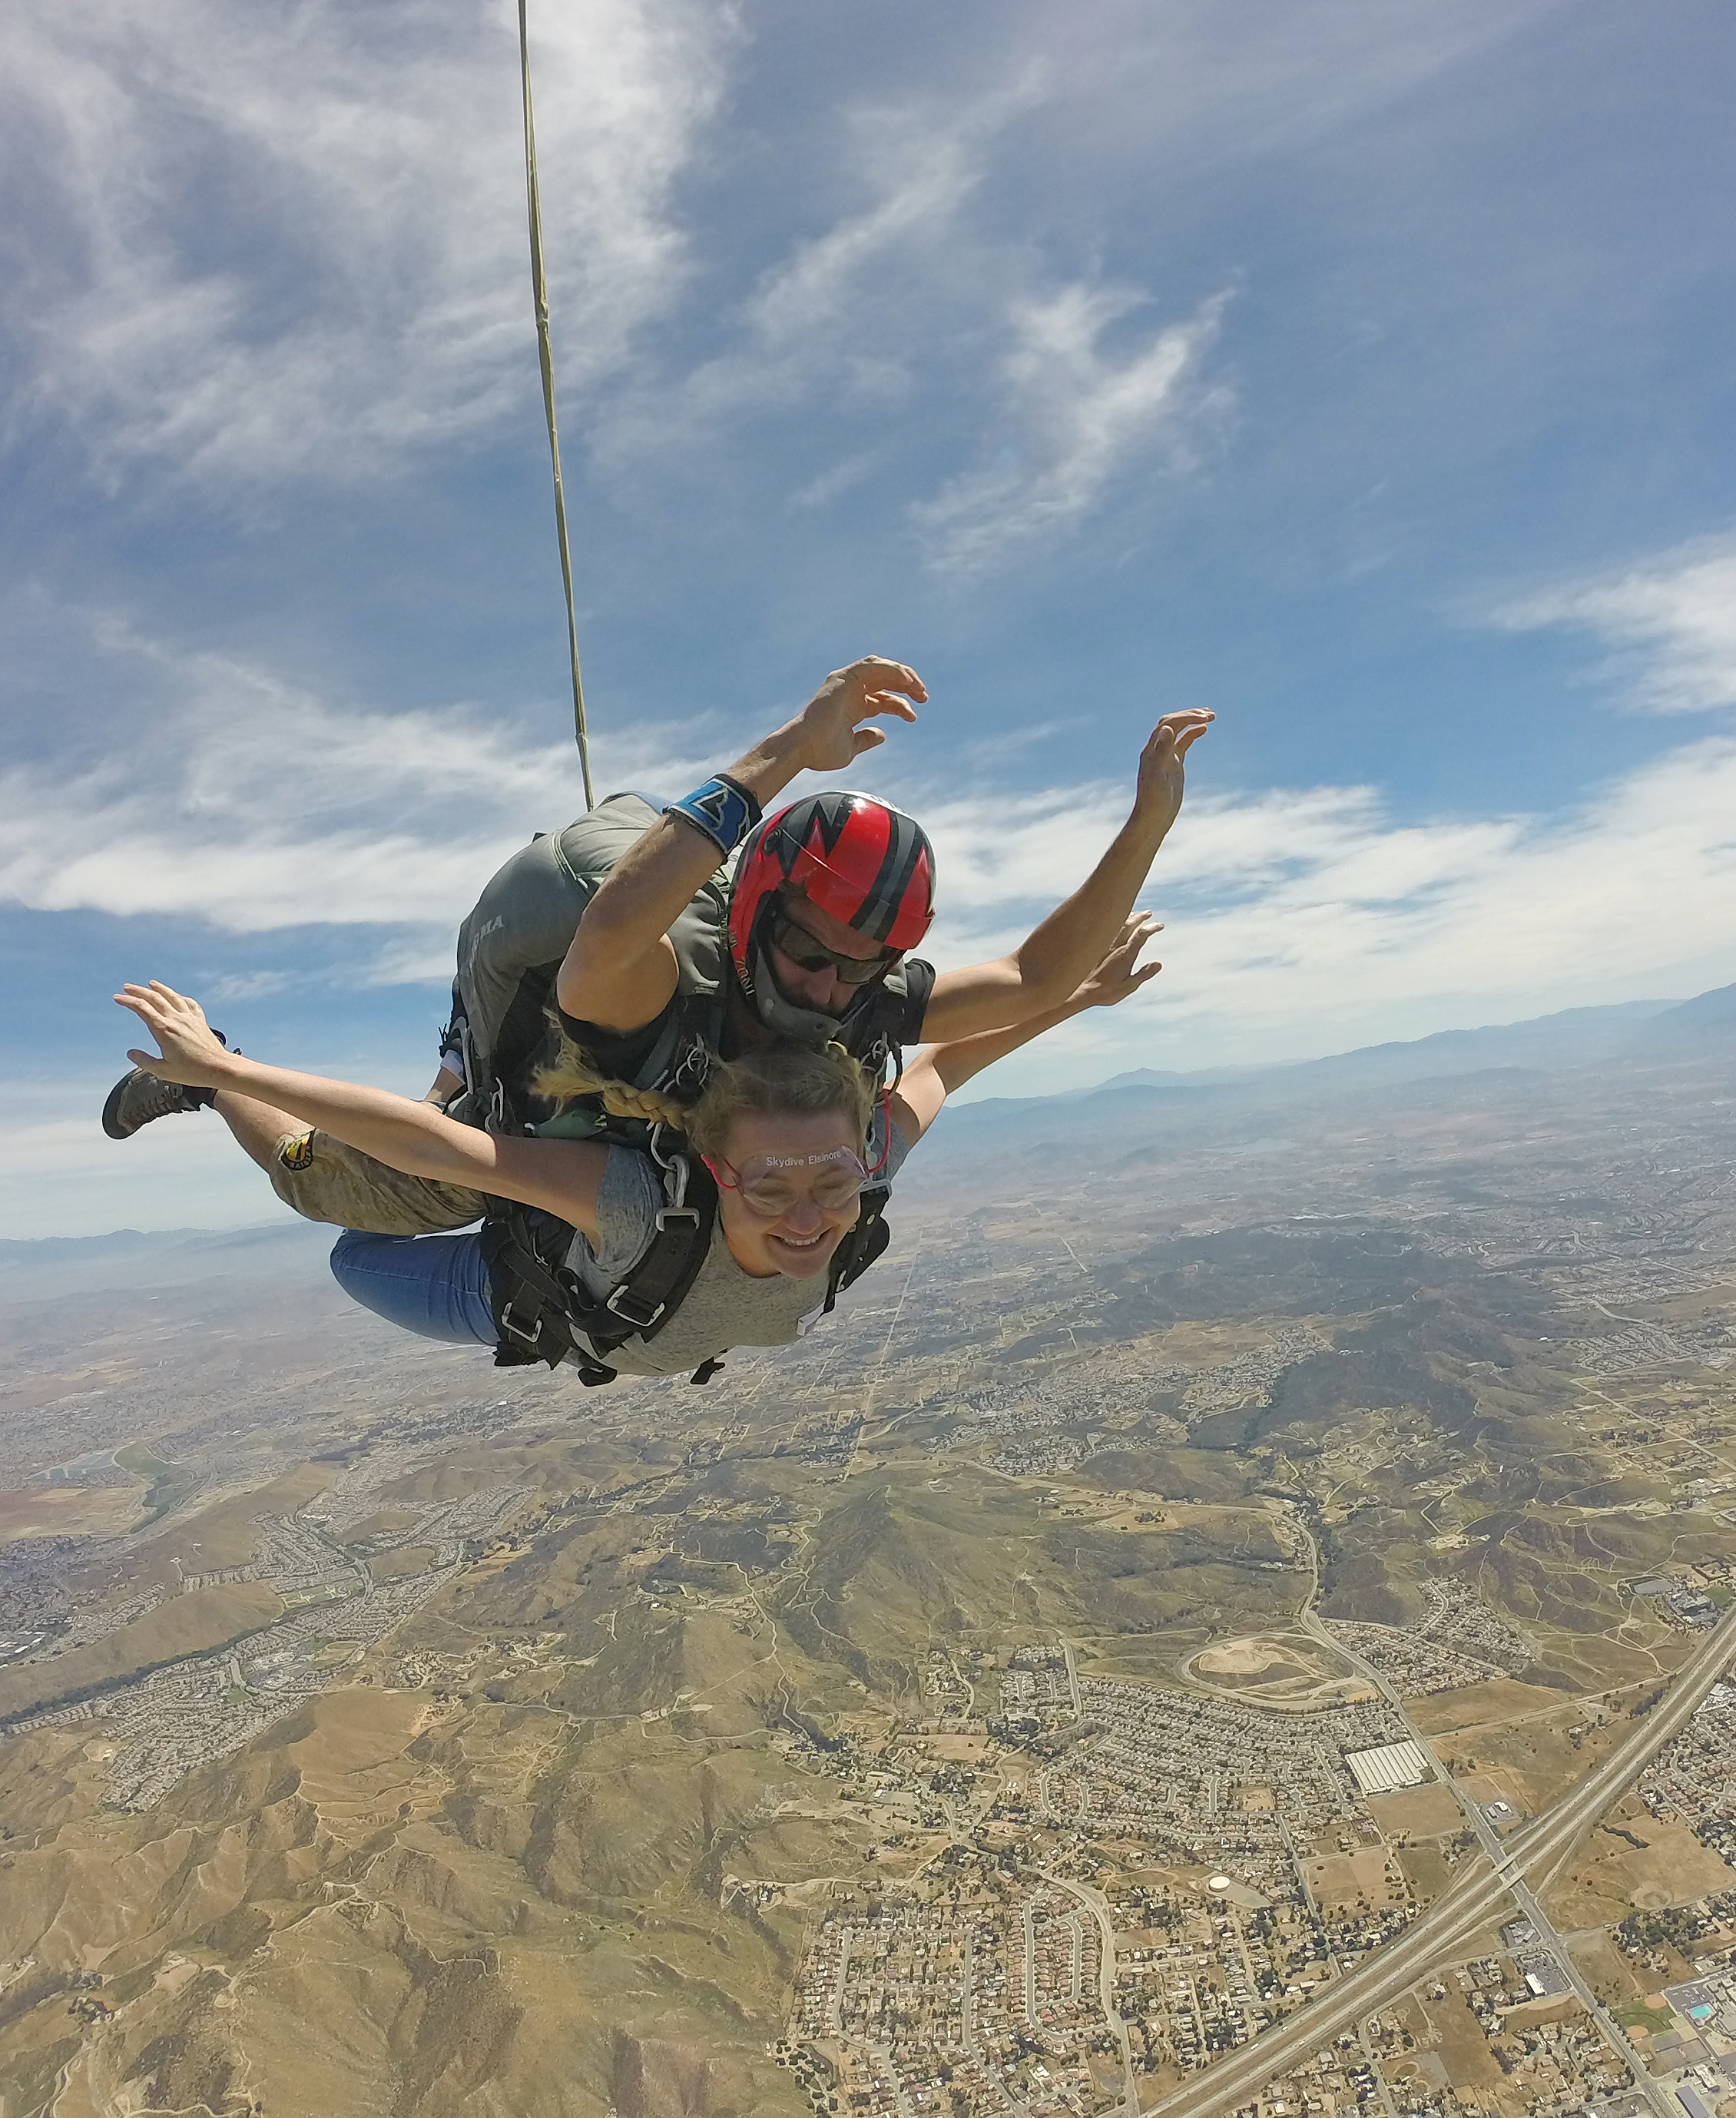 Taking a Leap at Skydive Elsinore [First Time Tandem